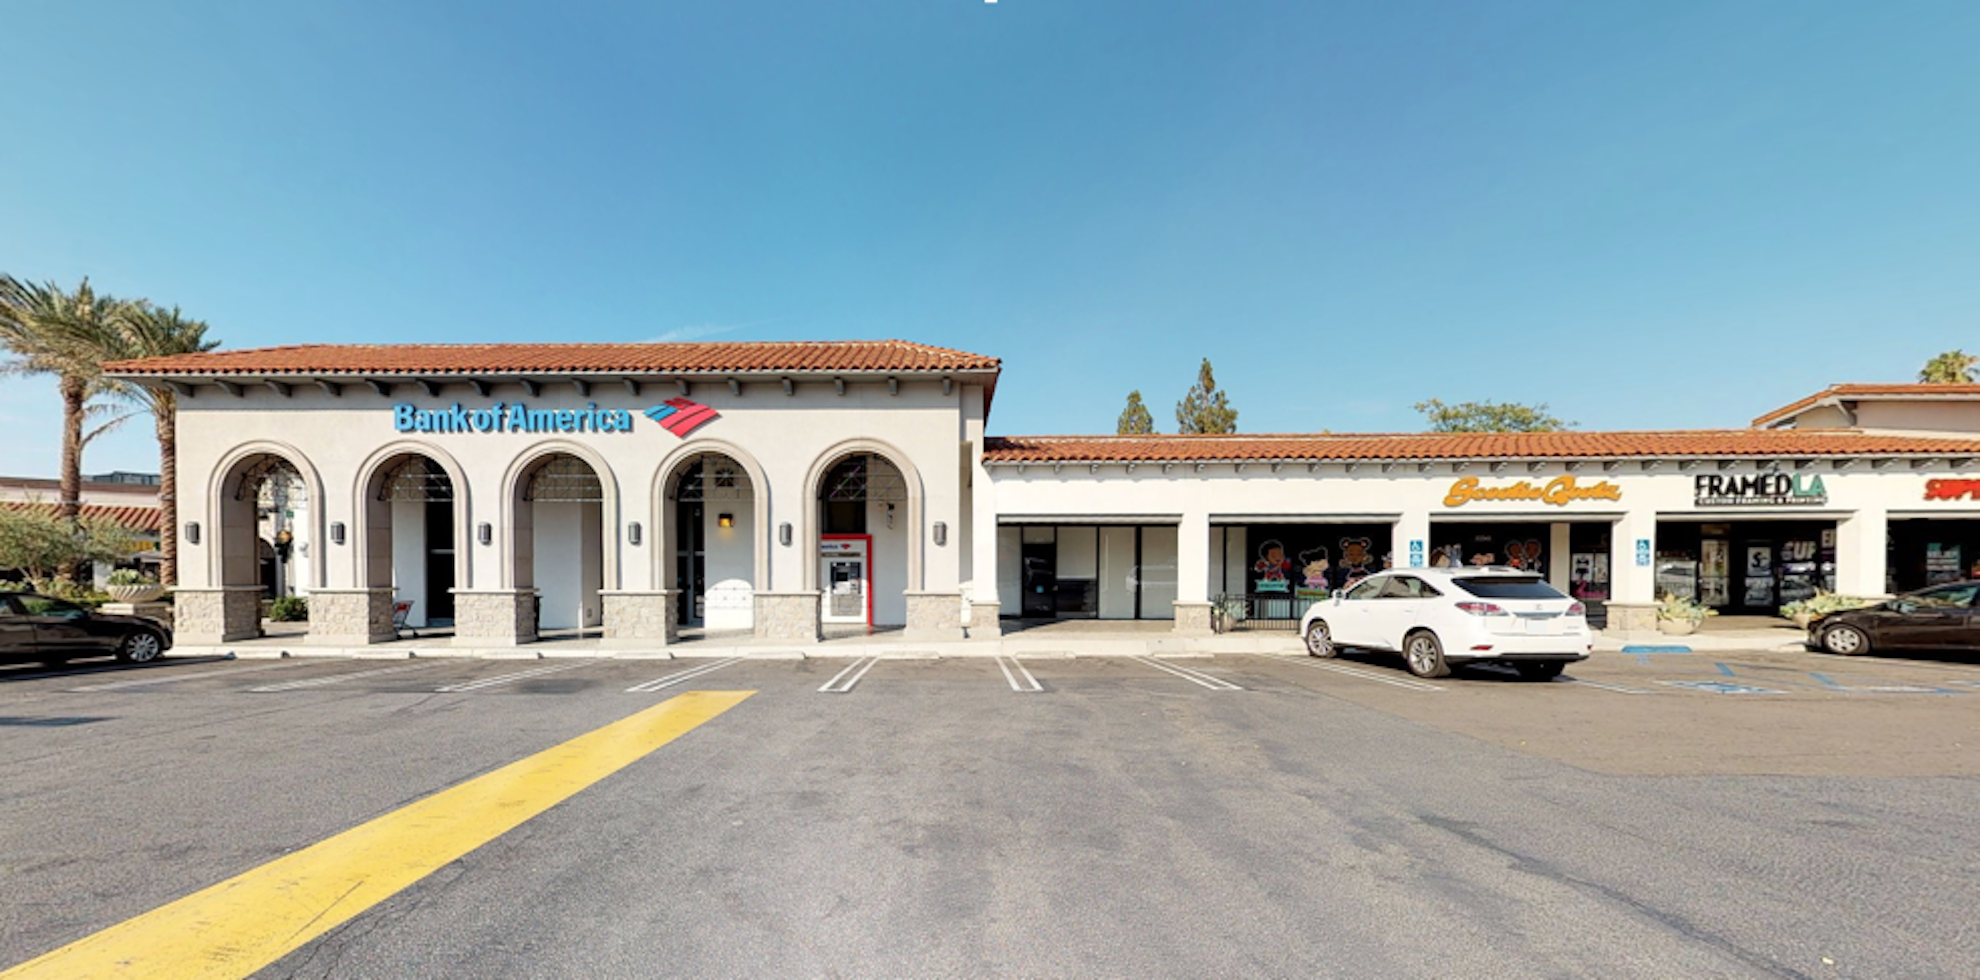 Bank of America financial center with walk-up ATM   23347 Mulholland Dr, Woodland Hills, CA 91364